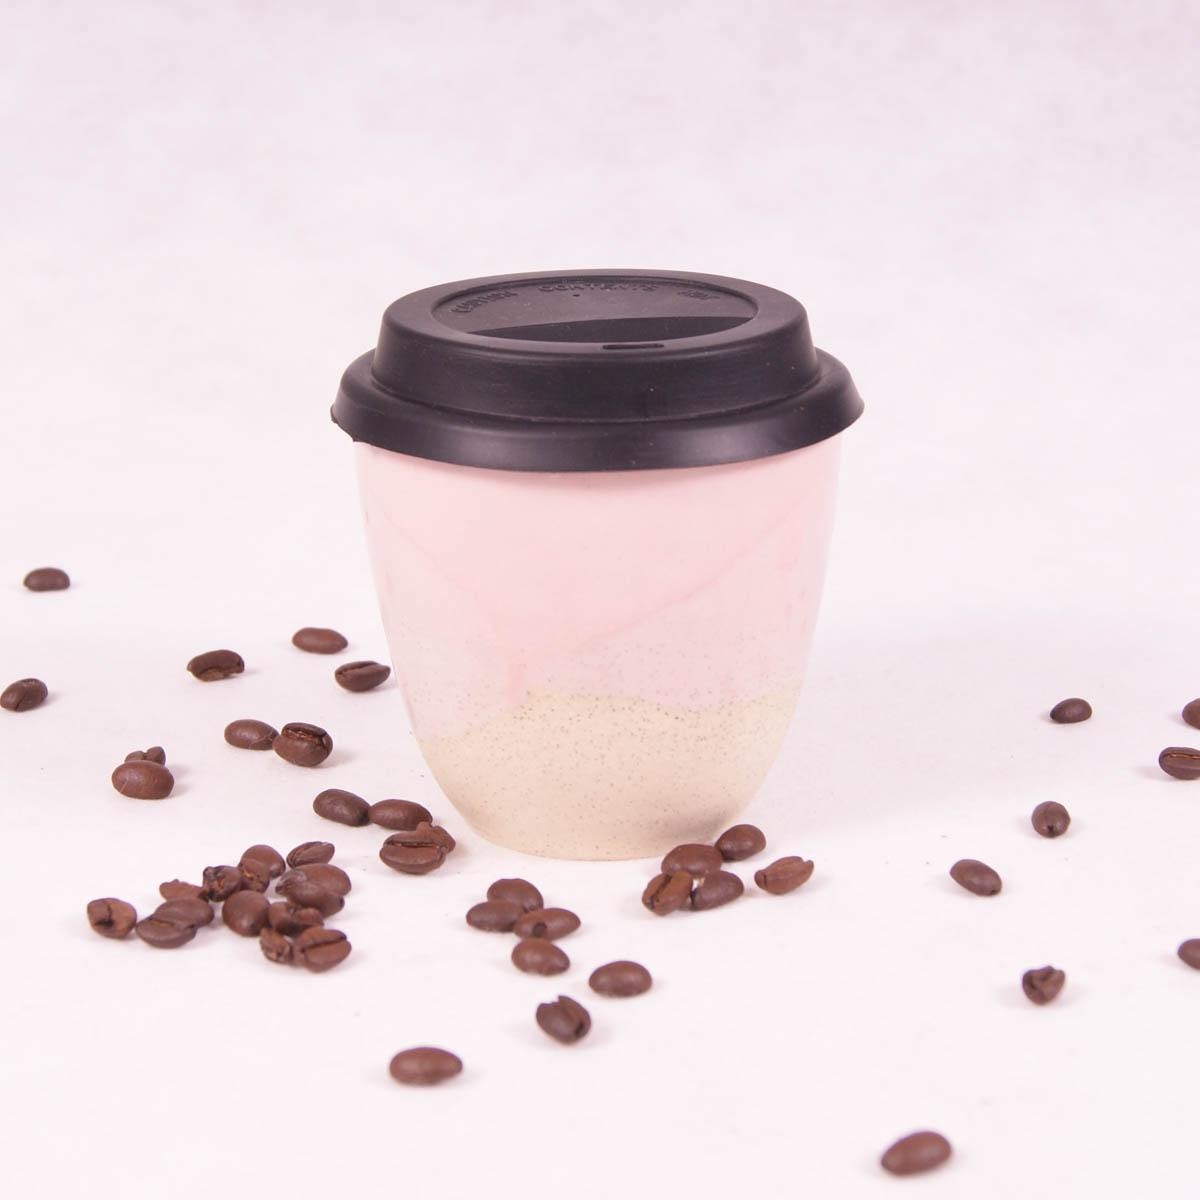 Ceramic Travel Cup Small - Fairy Floss Pink - Travel Cup - Throw Some Seeds - Australian gardening gifts and eco products online!